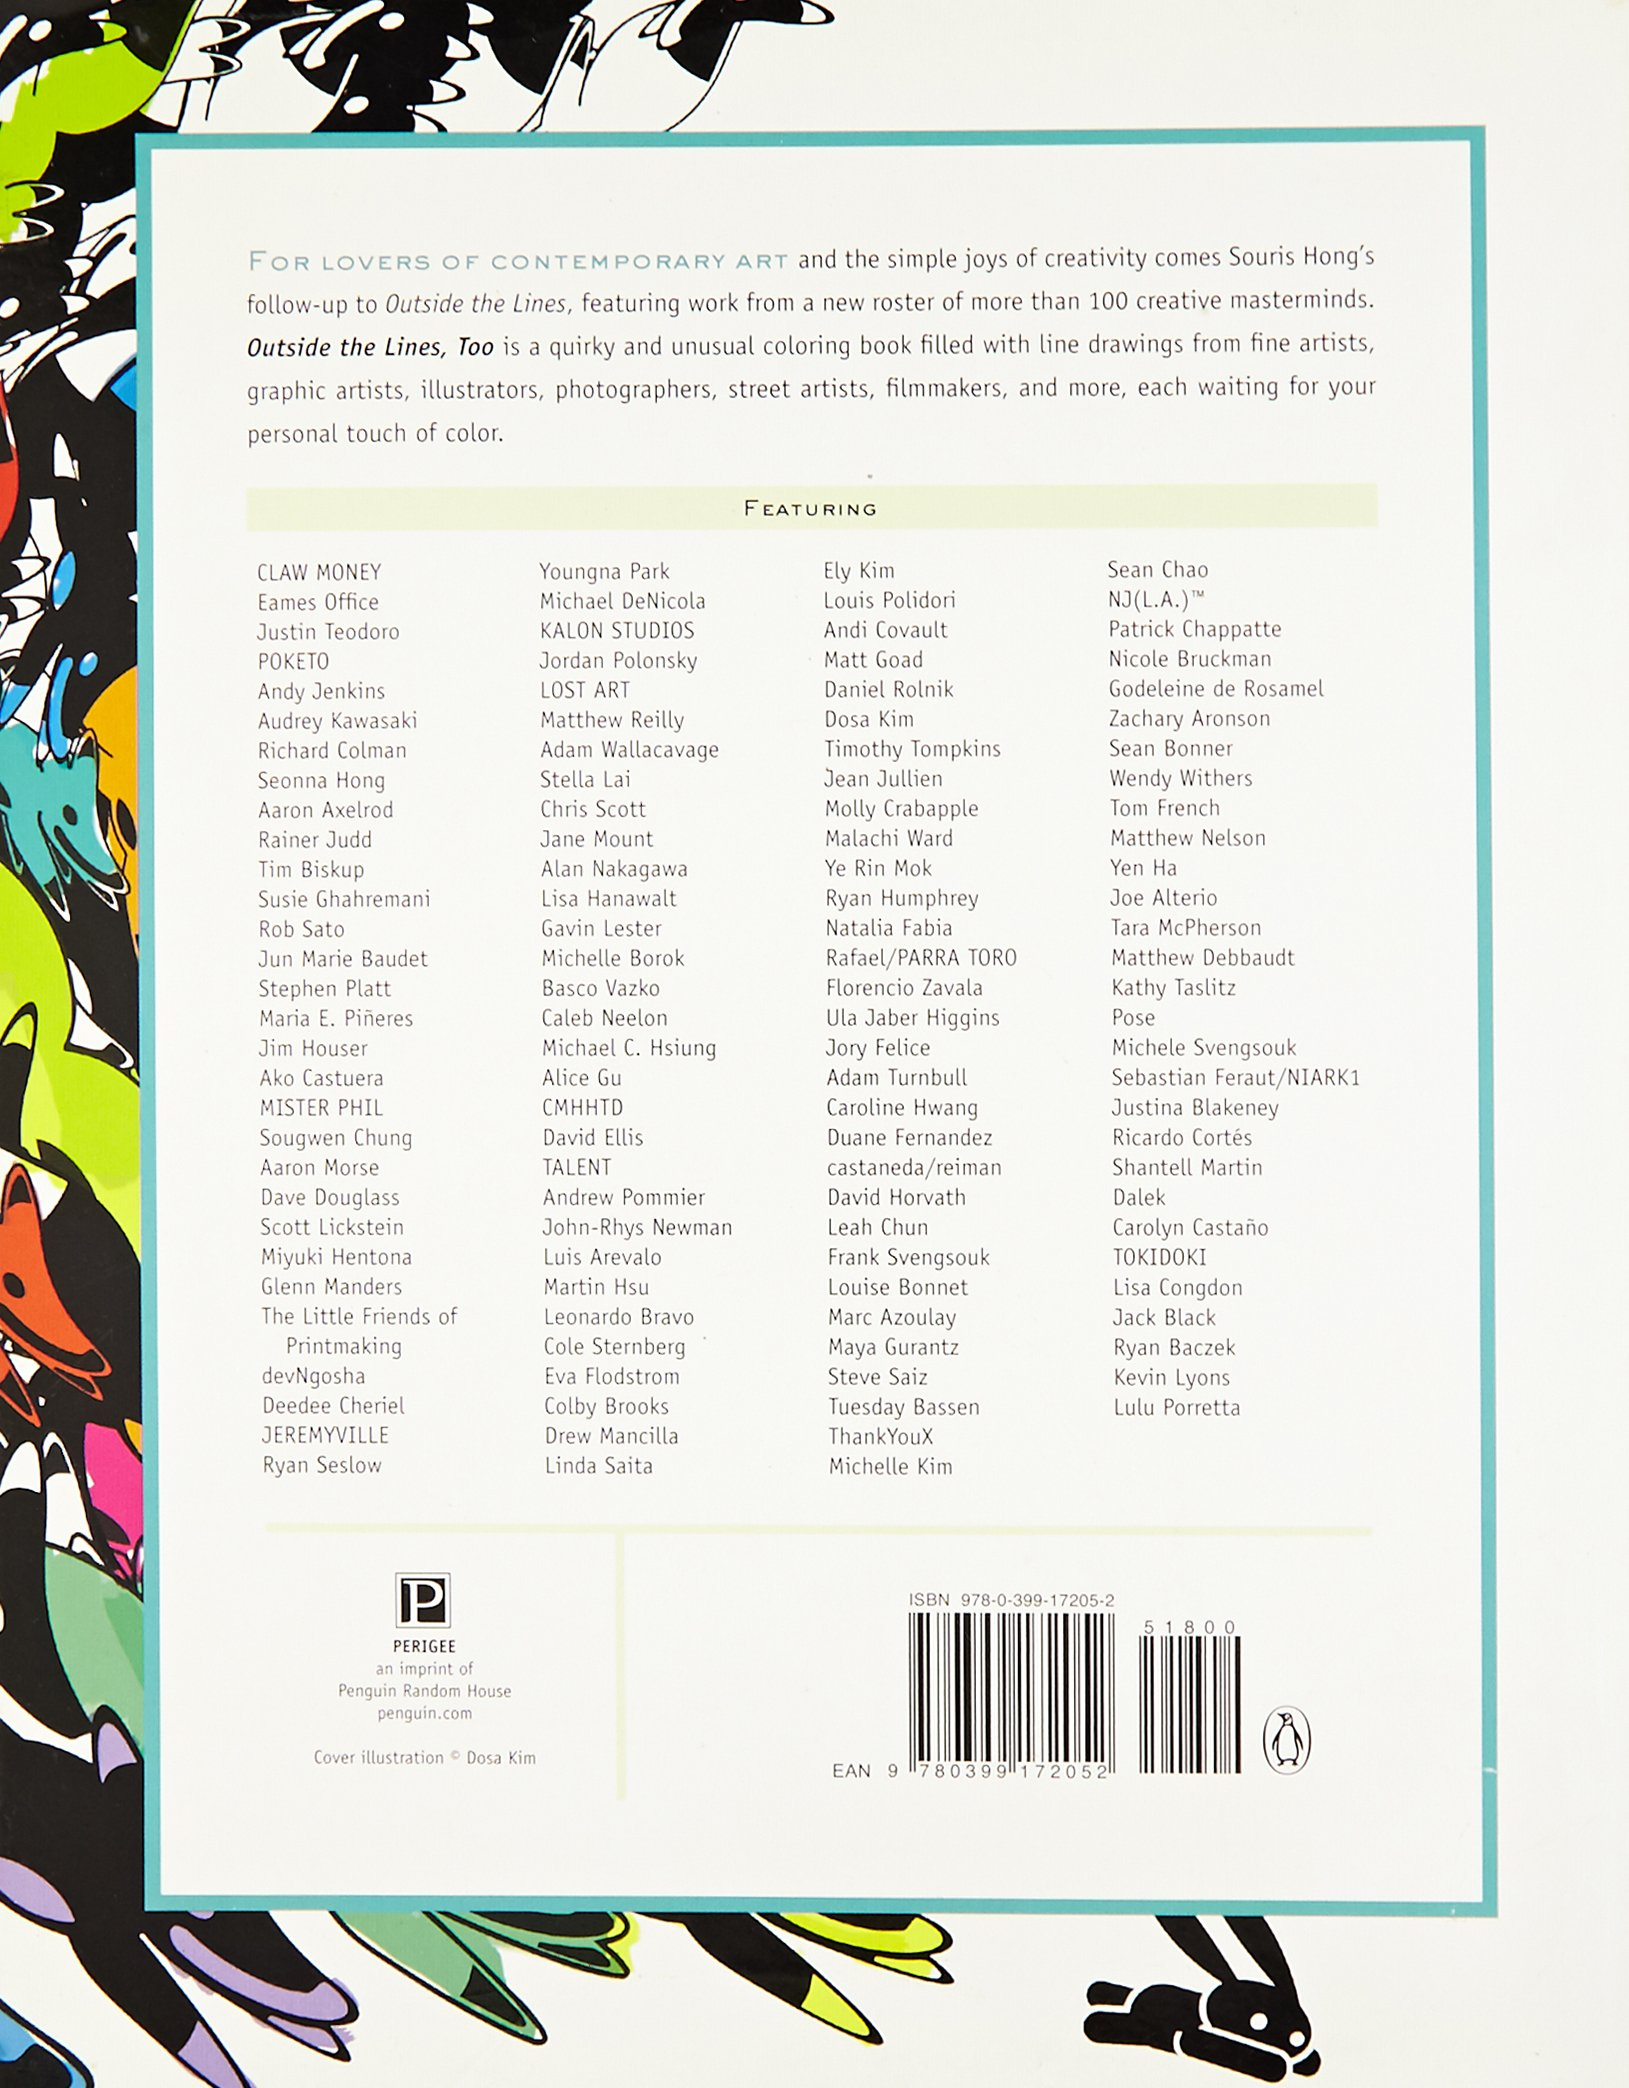 outside the lines too an inspired and inventive coloring book by creative masterminds souris hong 9780399172052 amazoncom books - Outside The Lines Coloring Book